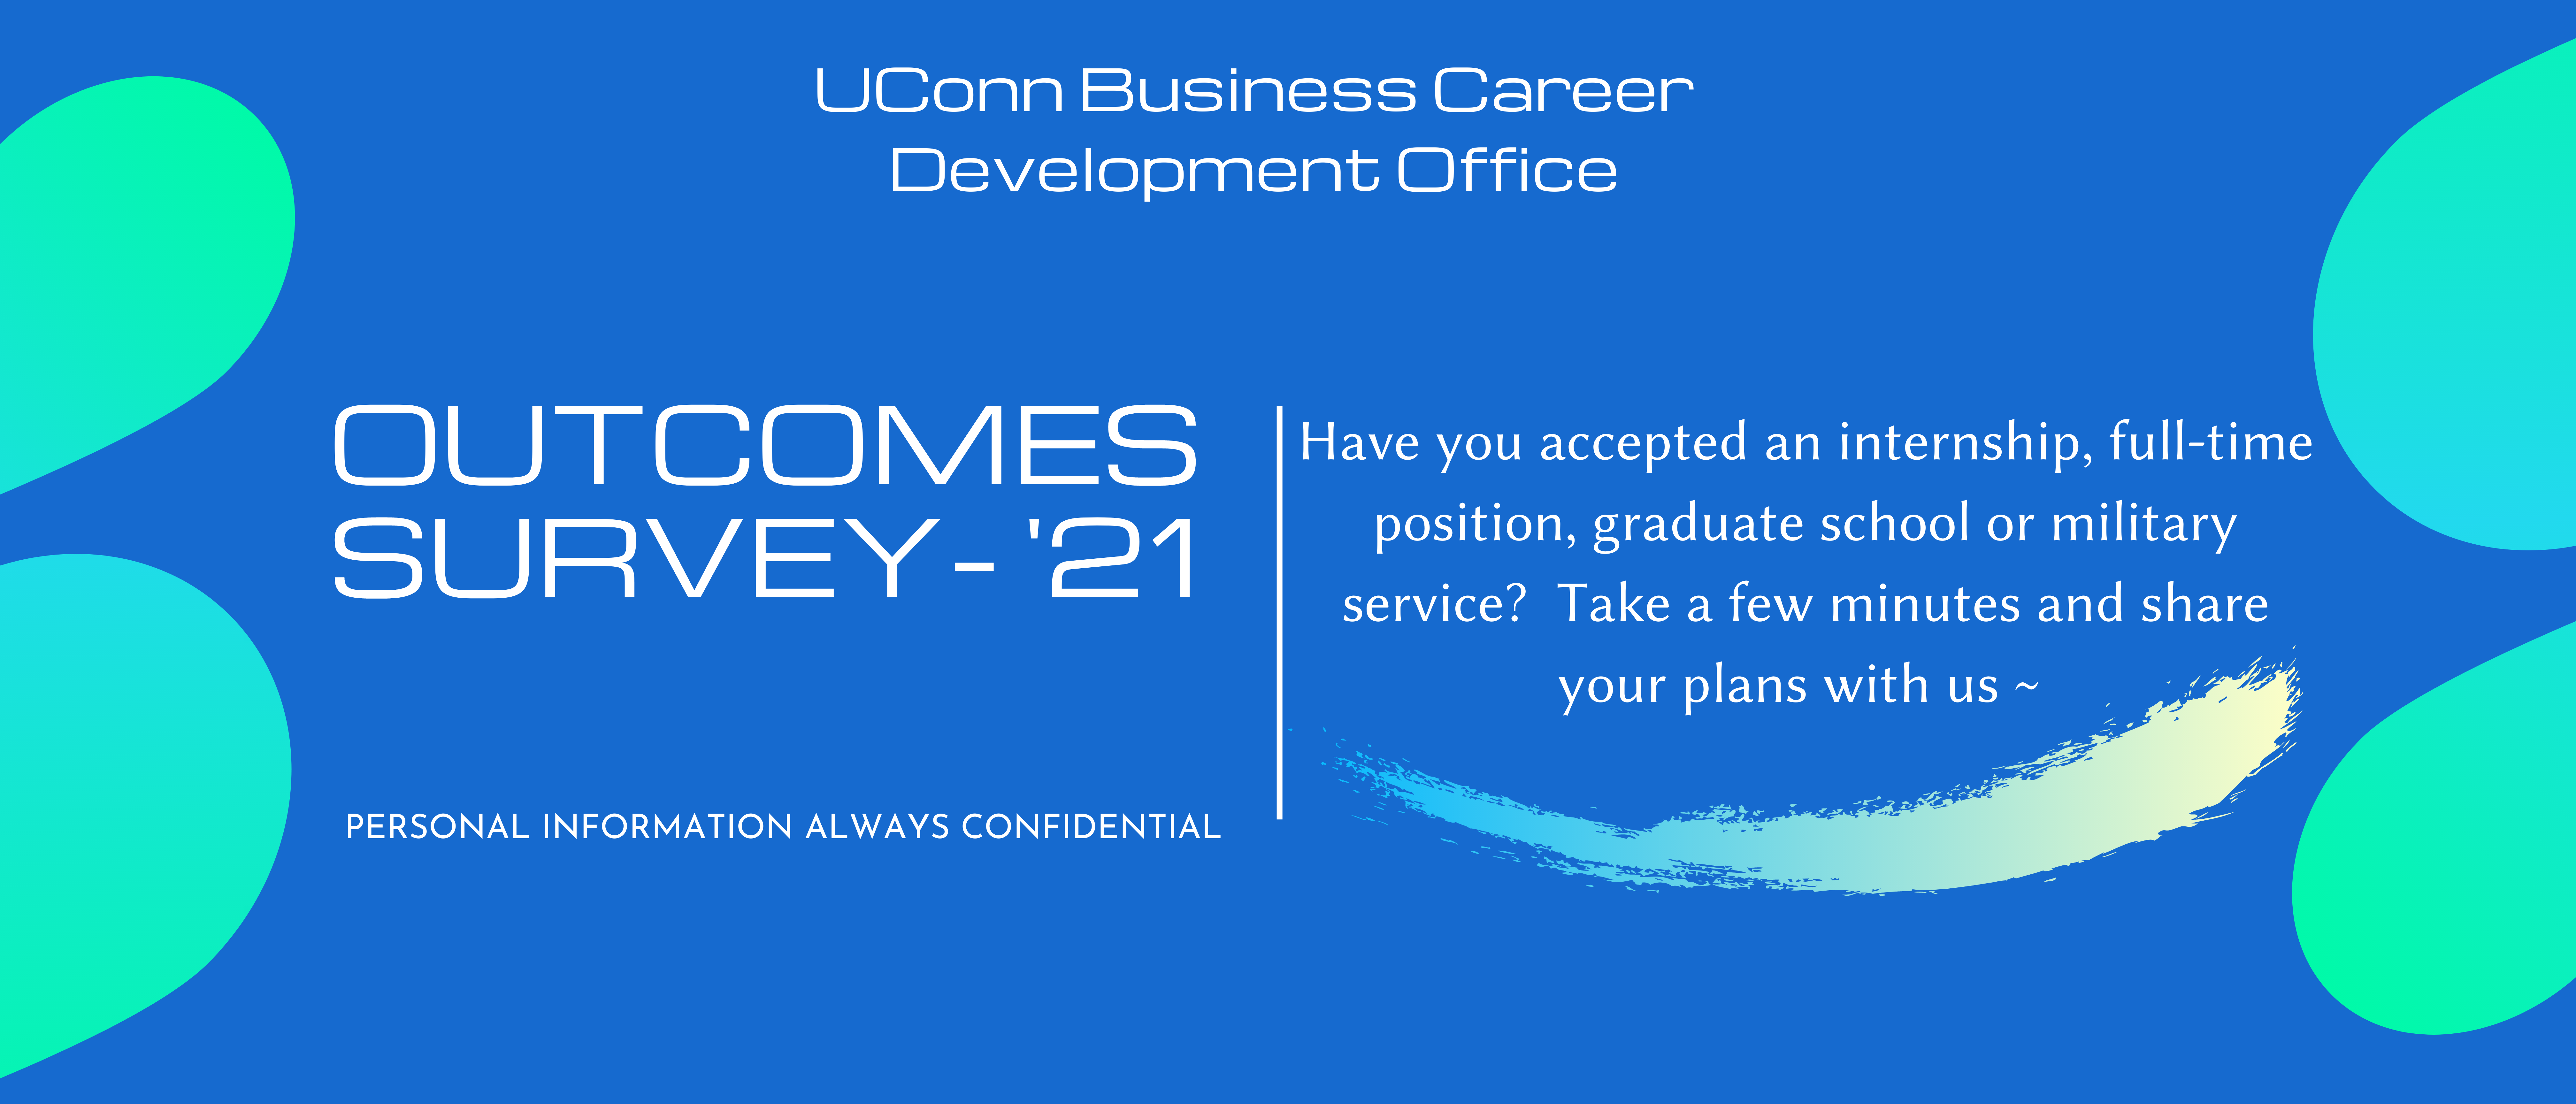 UConn Business Student Resources